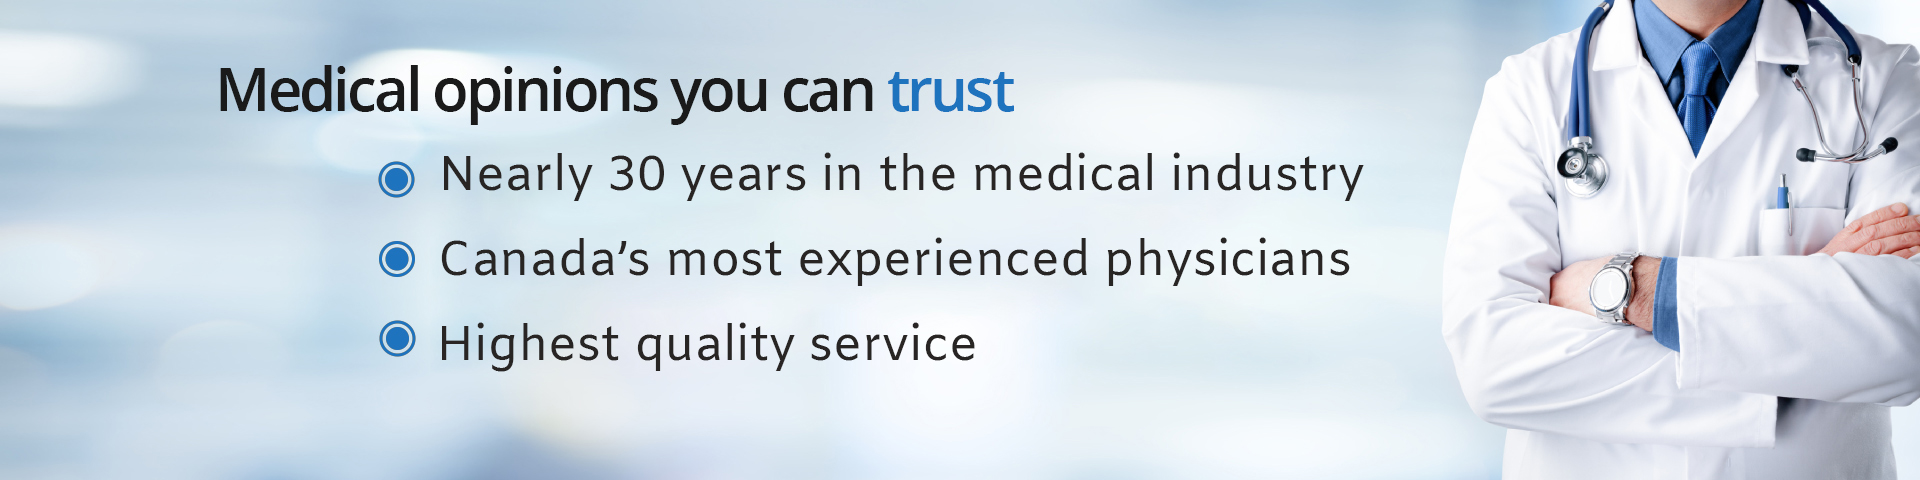 Medical opinions you can trust